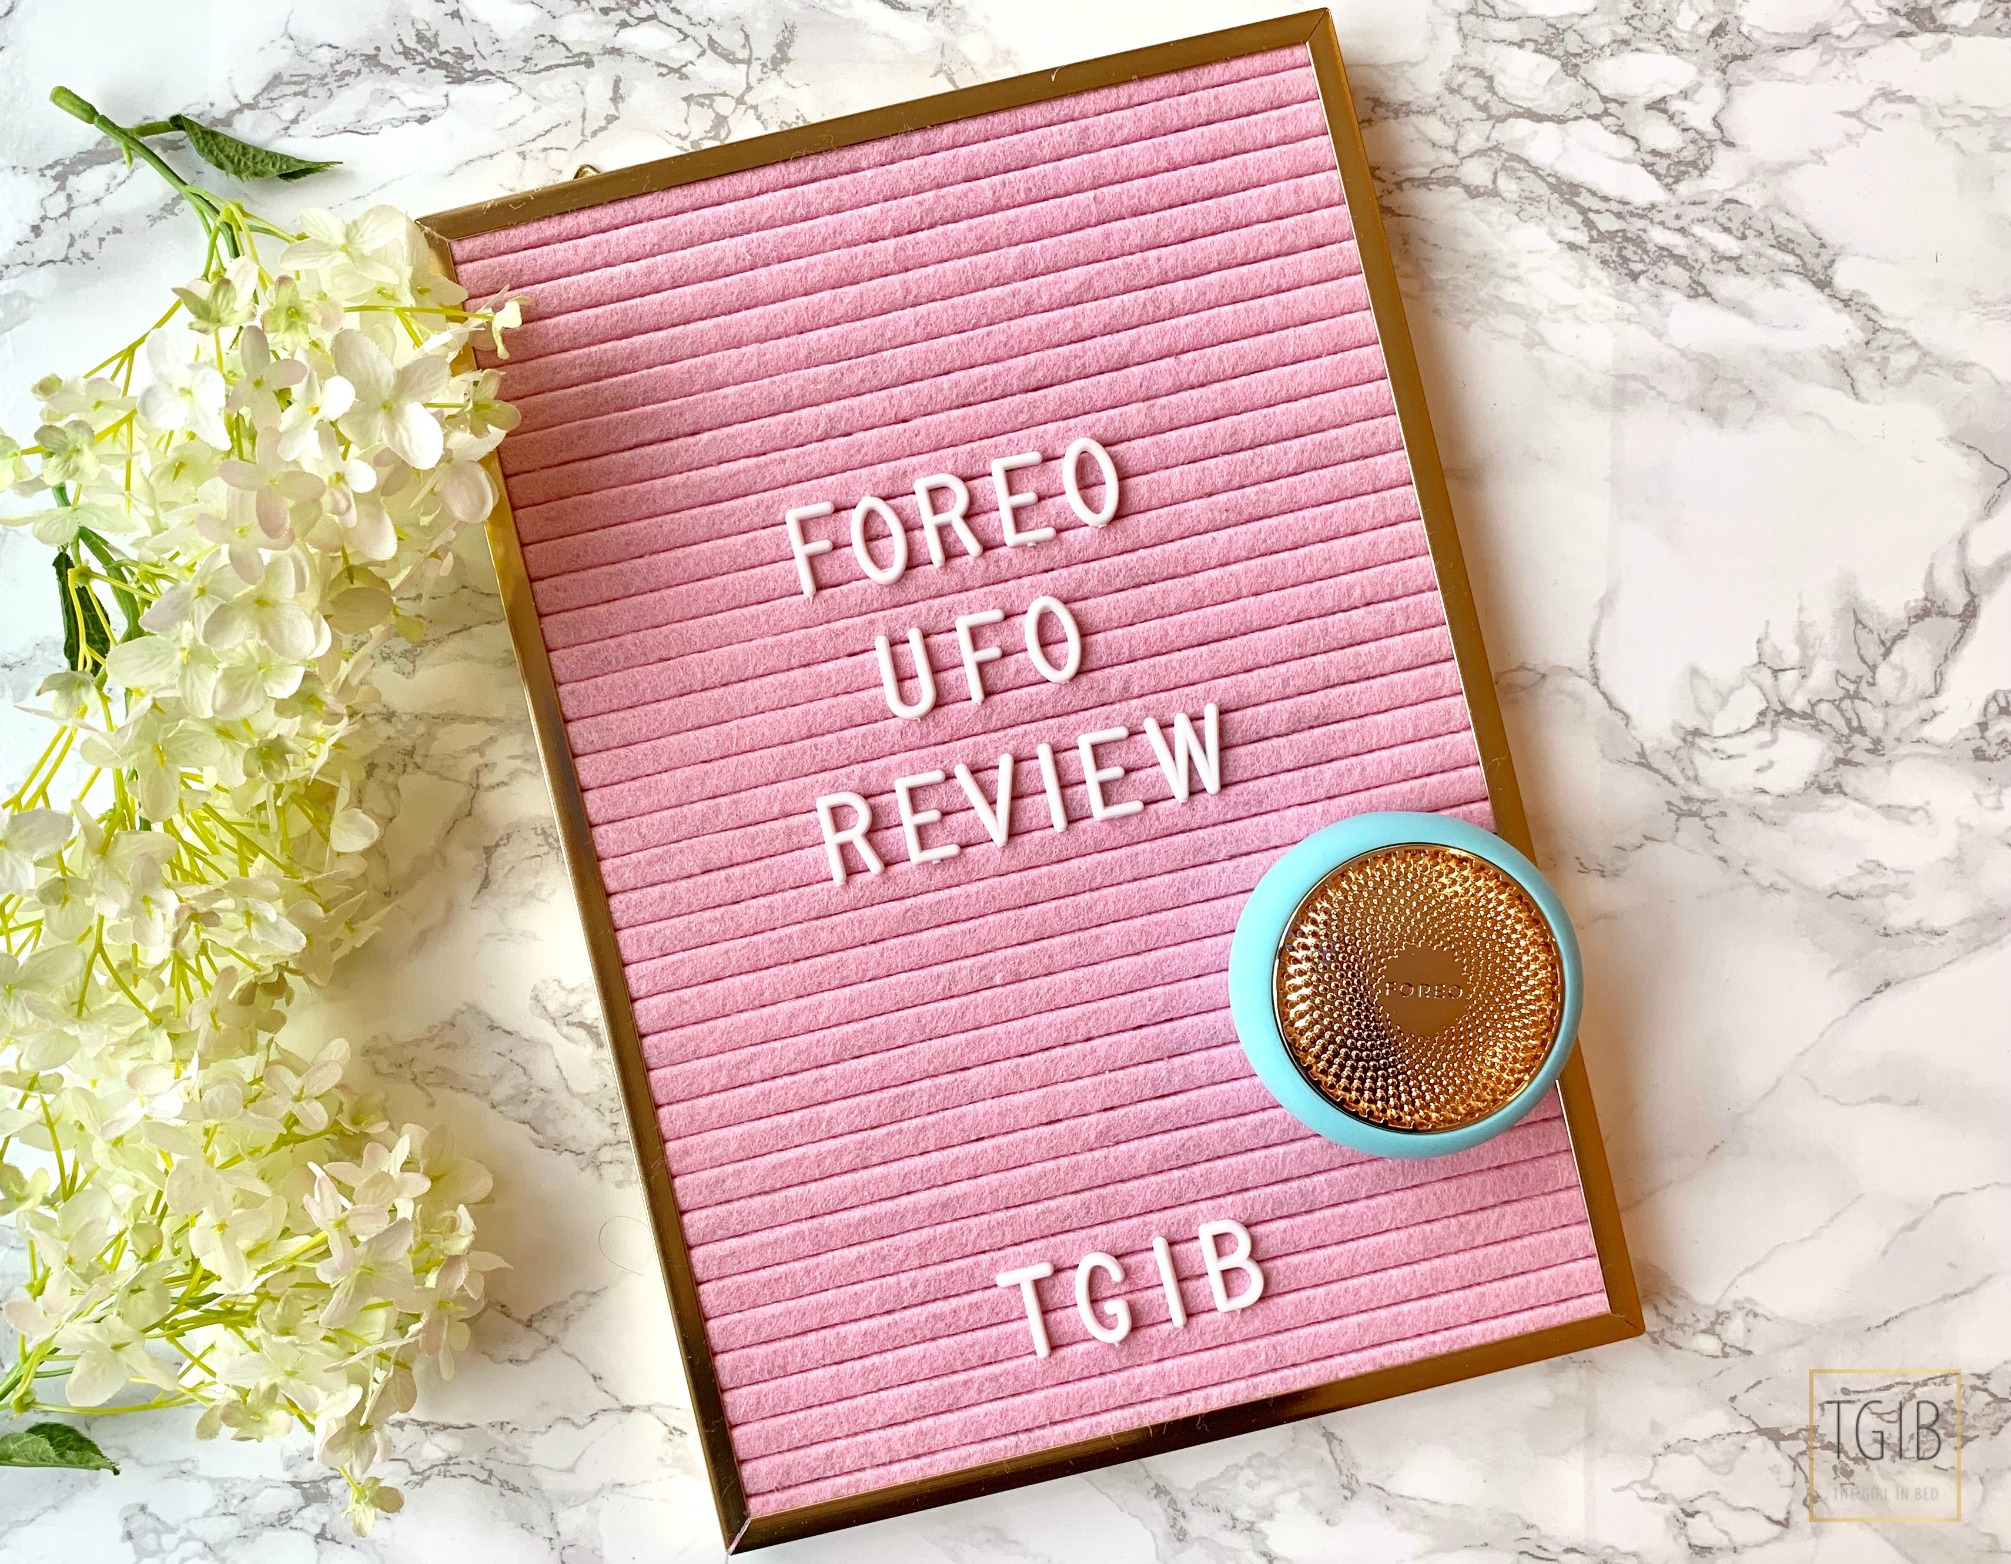 Foreo Ufo Review blue